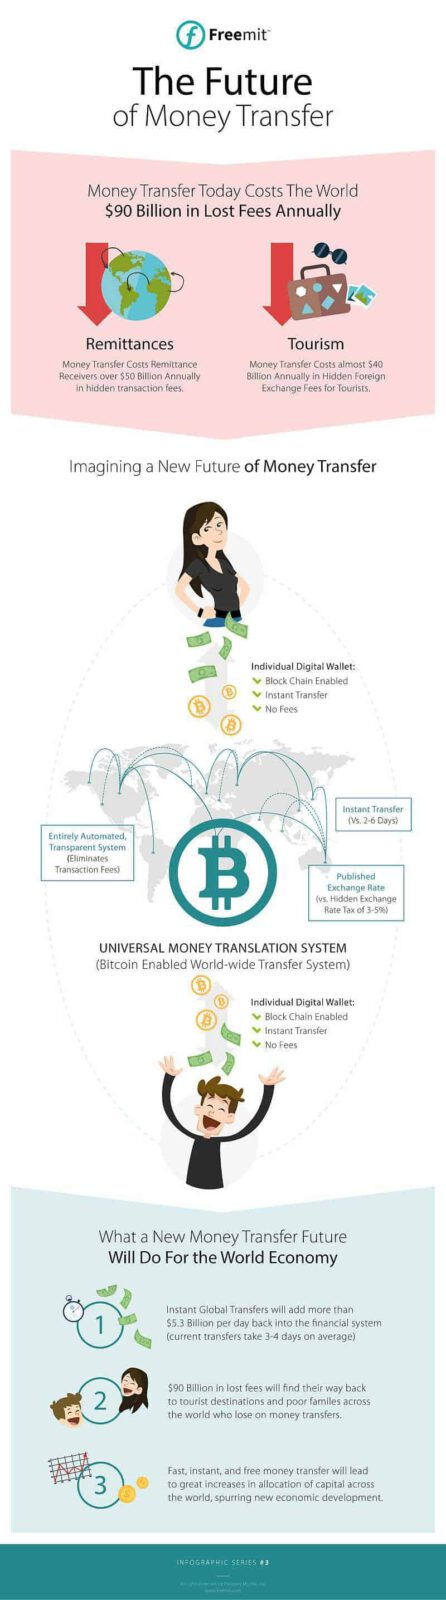 freemit_infographic_desktop_future_of_money_transfer_01-2